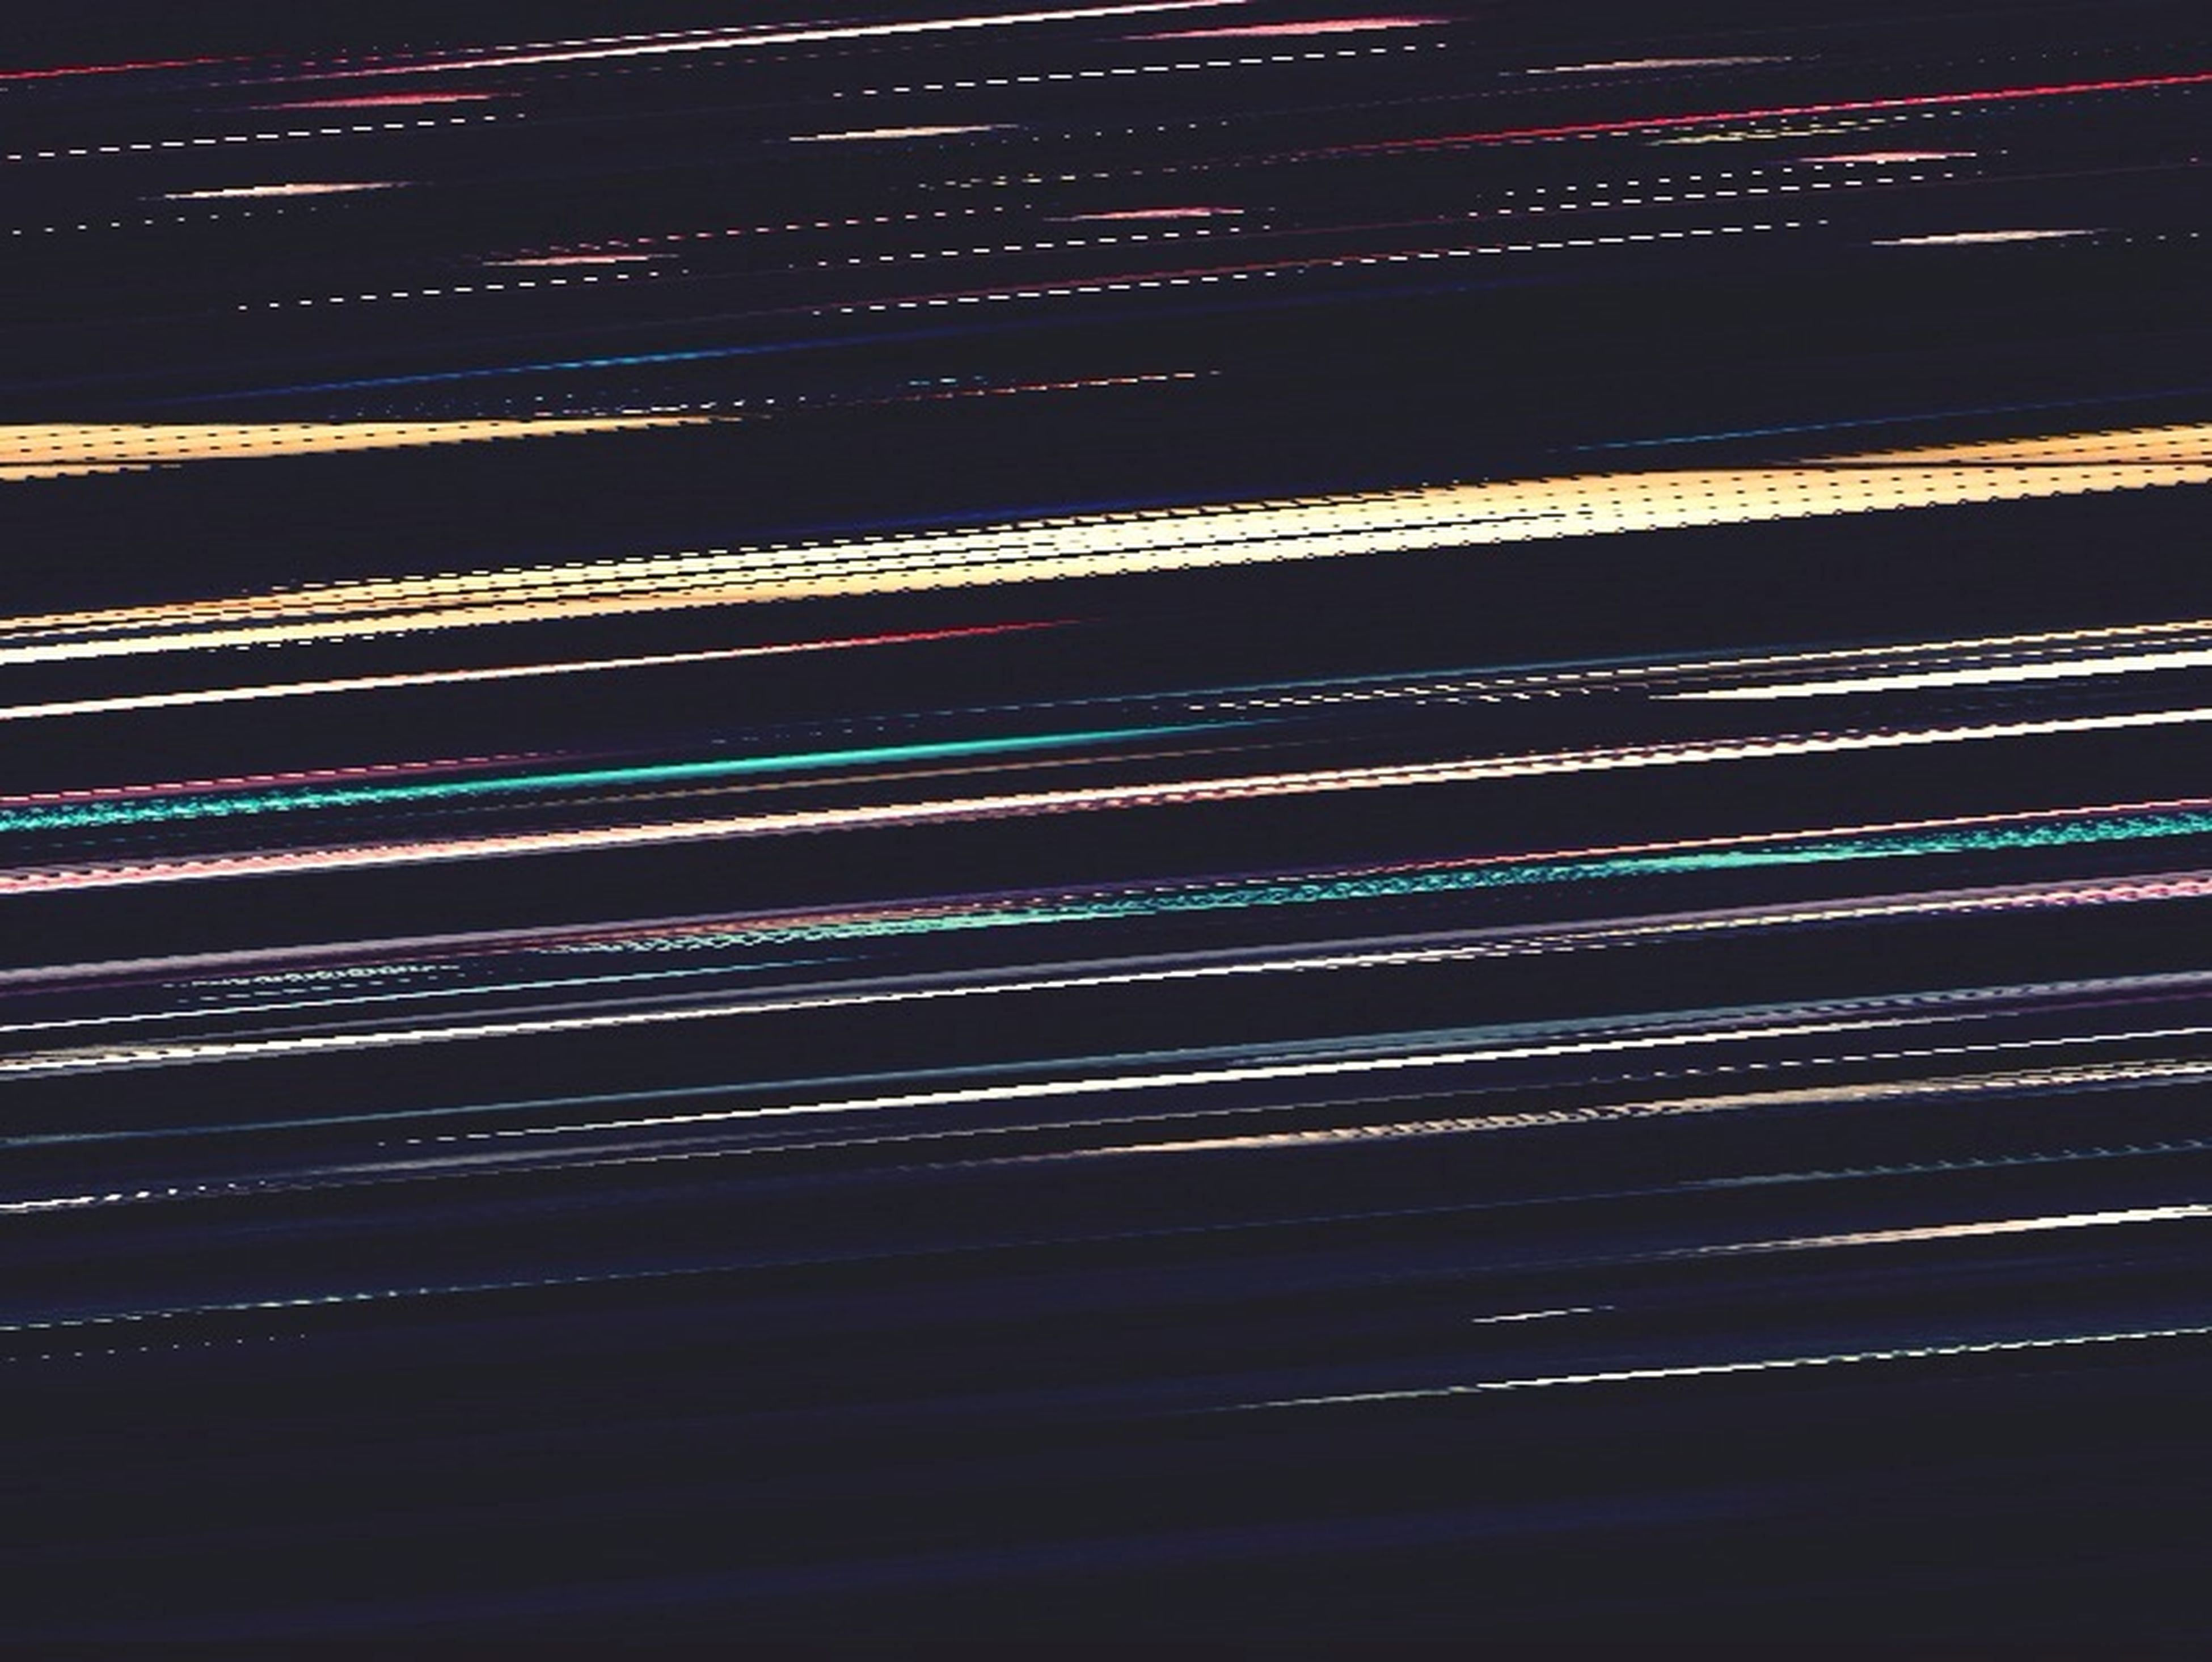 night, illuminated, long exposure, light trail, pattern, backgrounds, full frame, abstract, motion, speed, multi colored, blurred motion, glowing, no people, light - natural phenomenon, curve, light, high angle view, outdoors, road